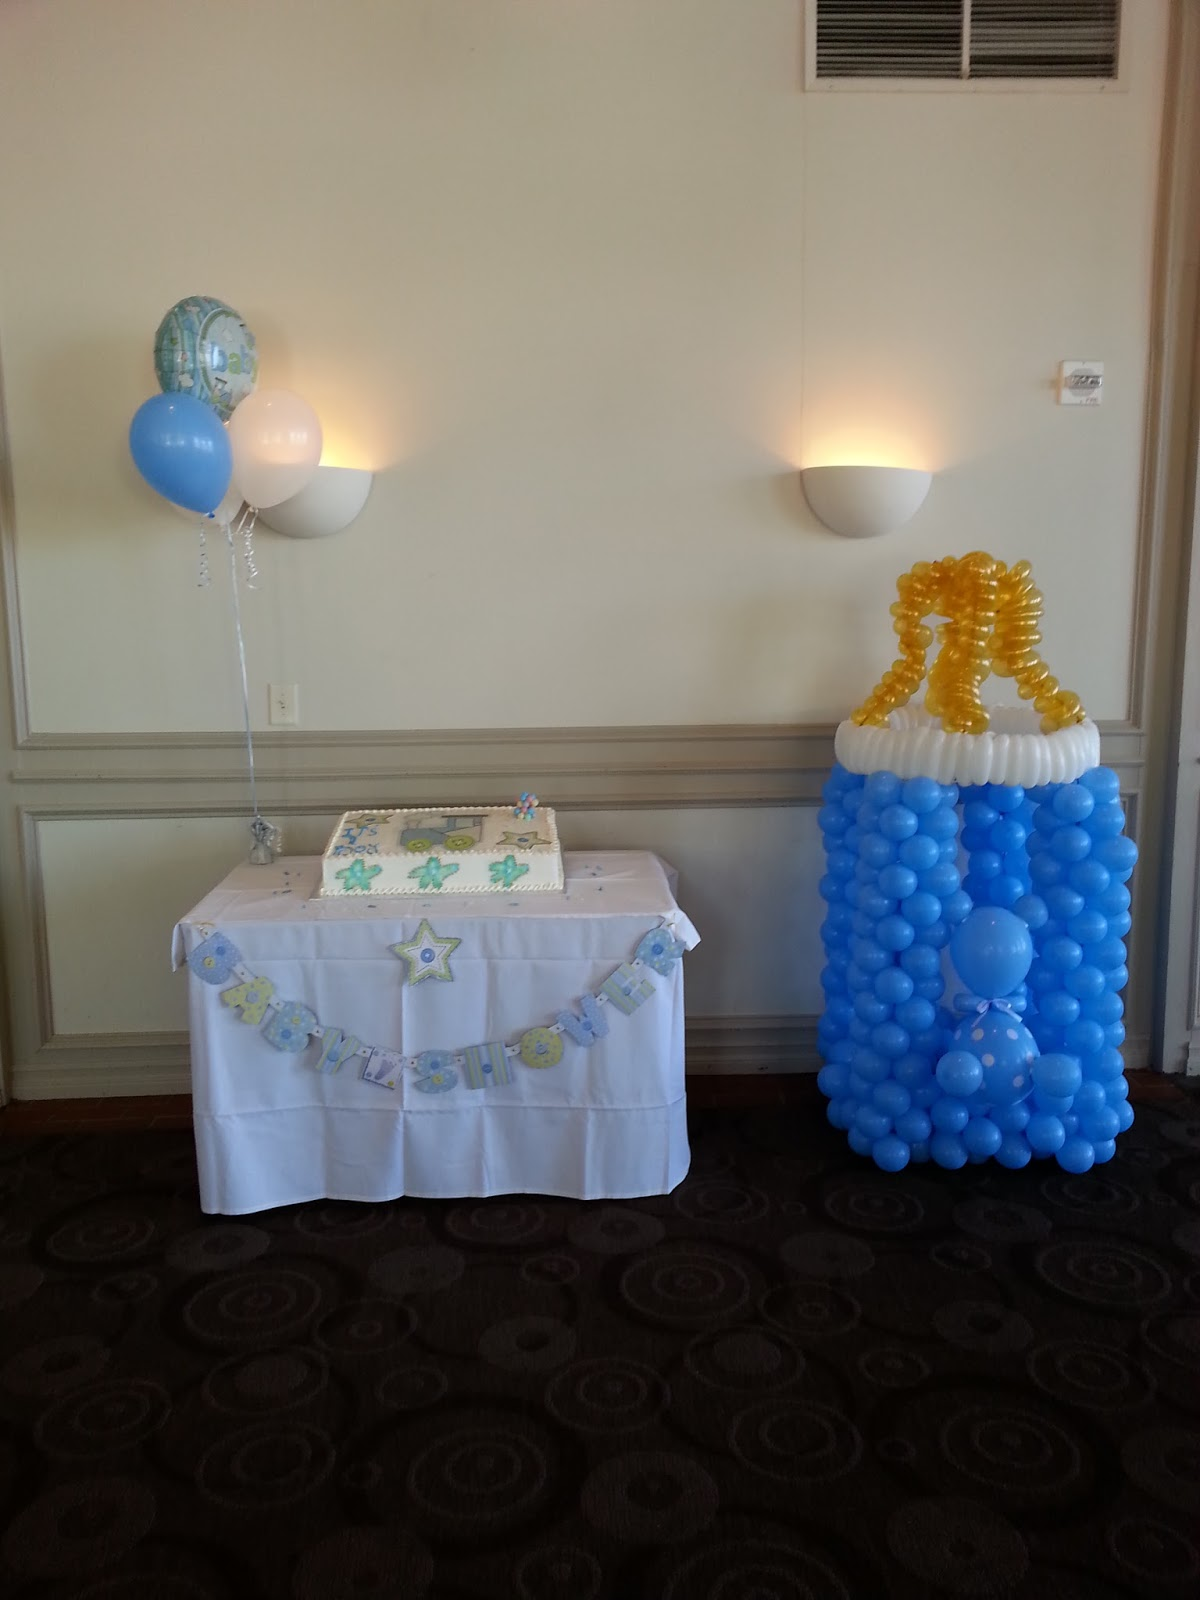 Pop balloons a baby shower for a boy for Baby shower balloons decoration